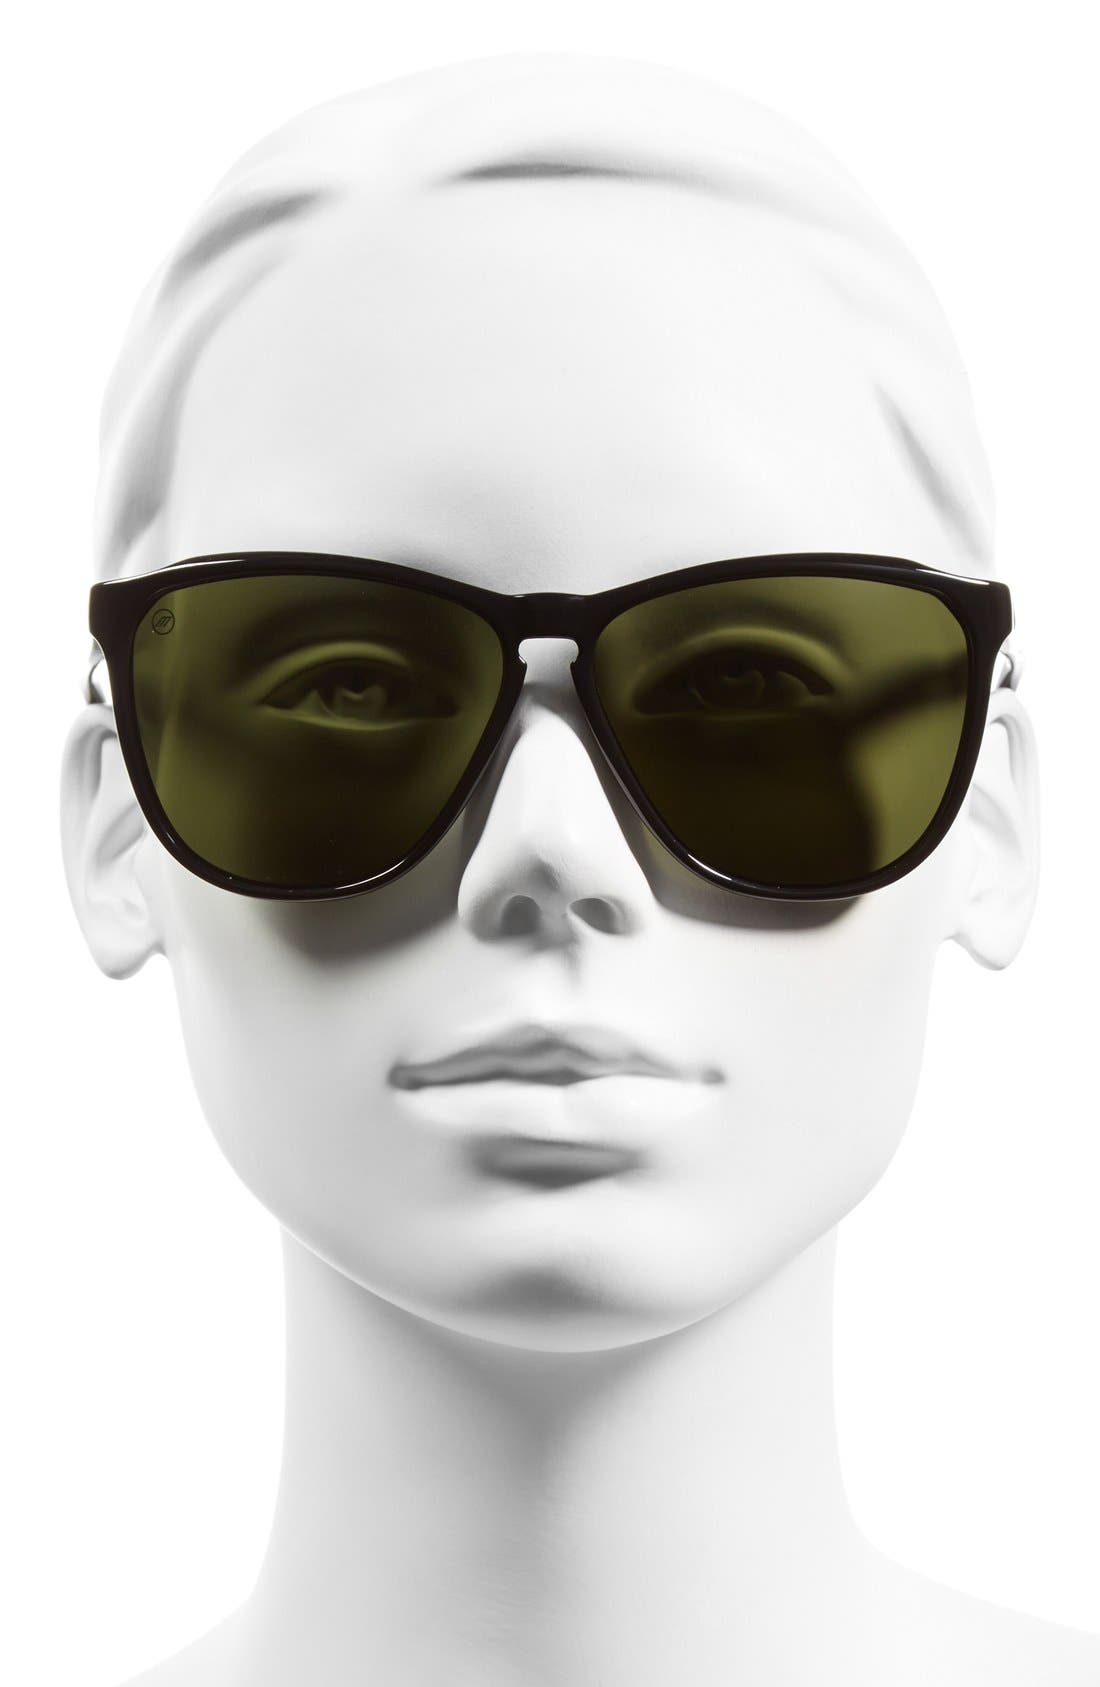 'encelia' 61mm Retro Sunglasses by Electric